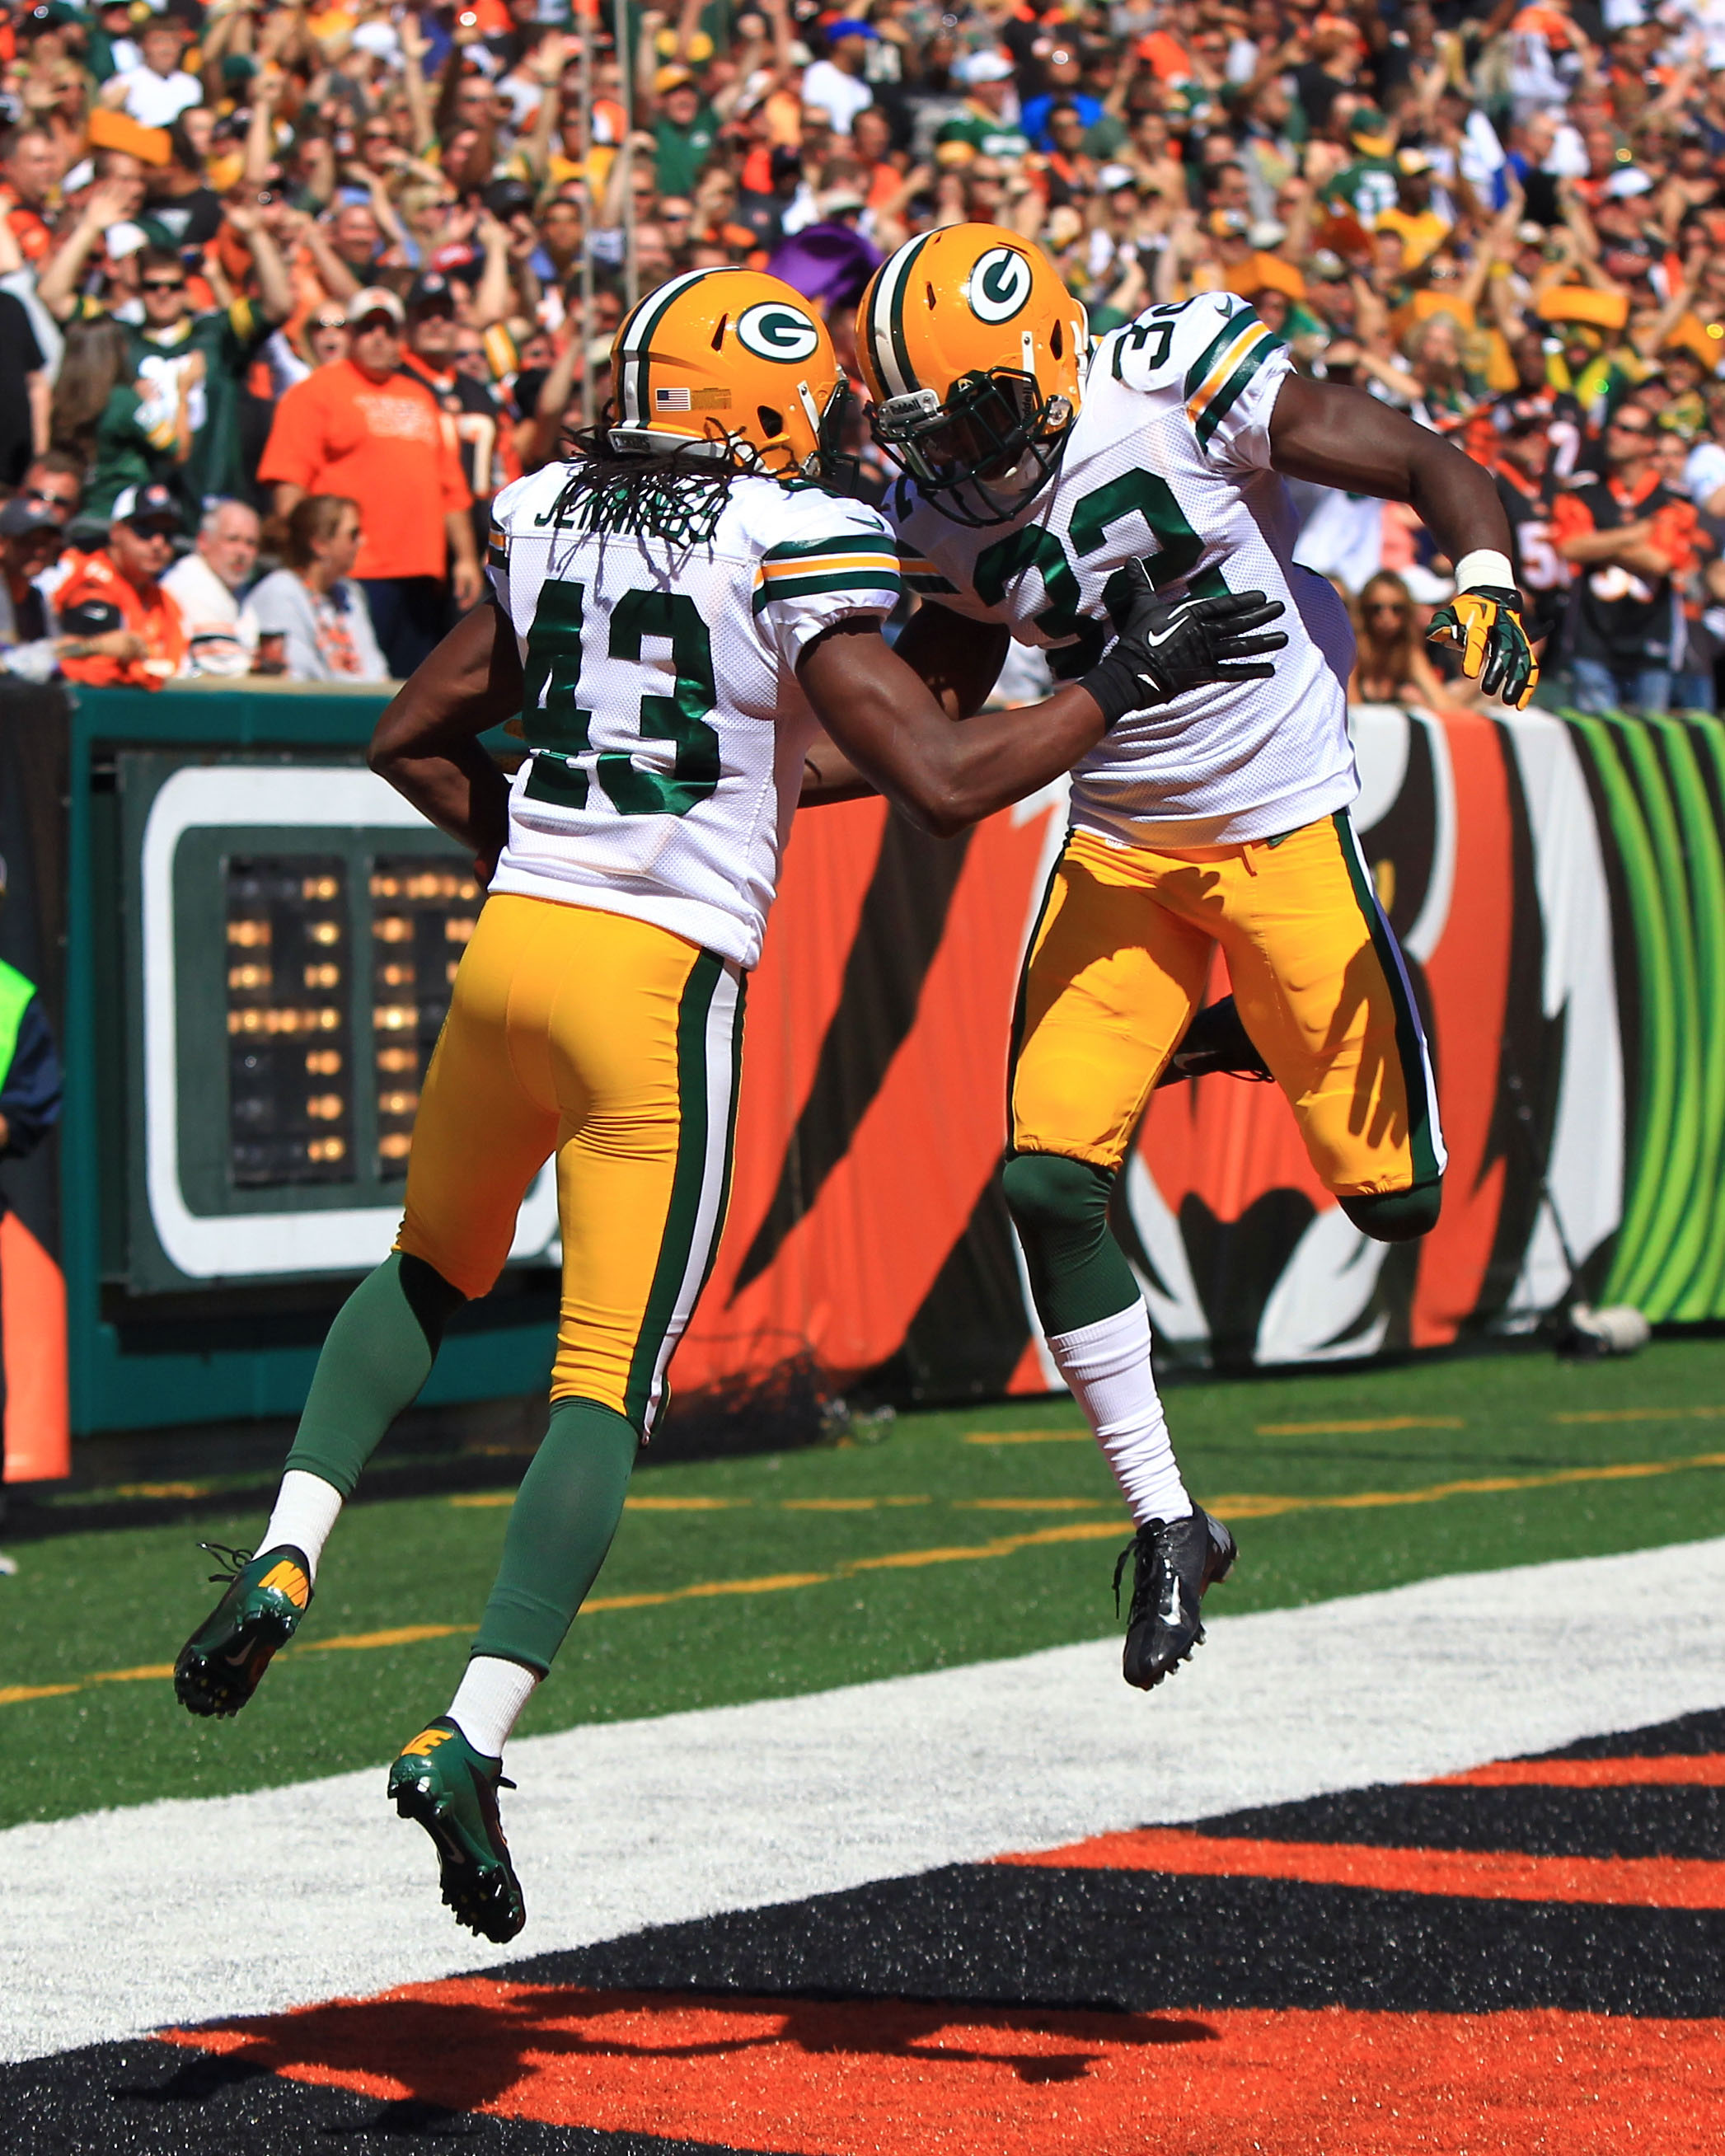 packers celebrate touchdown